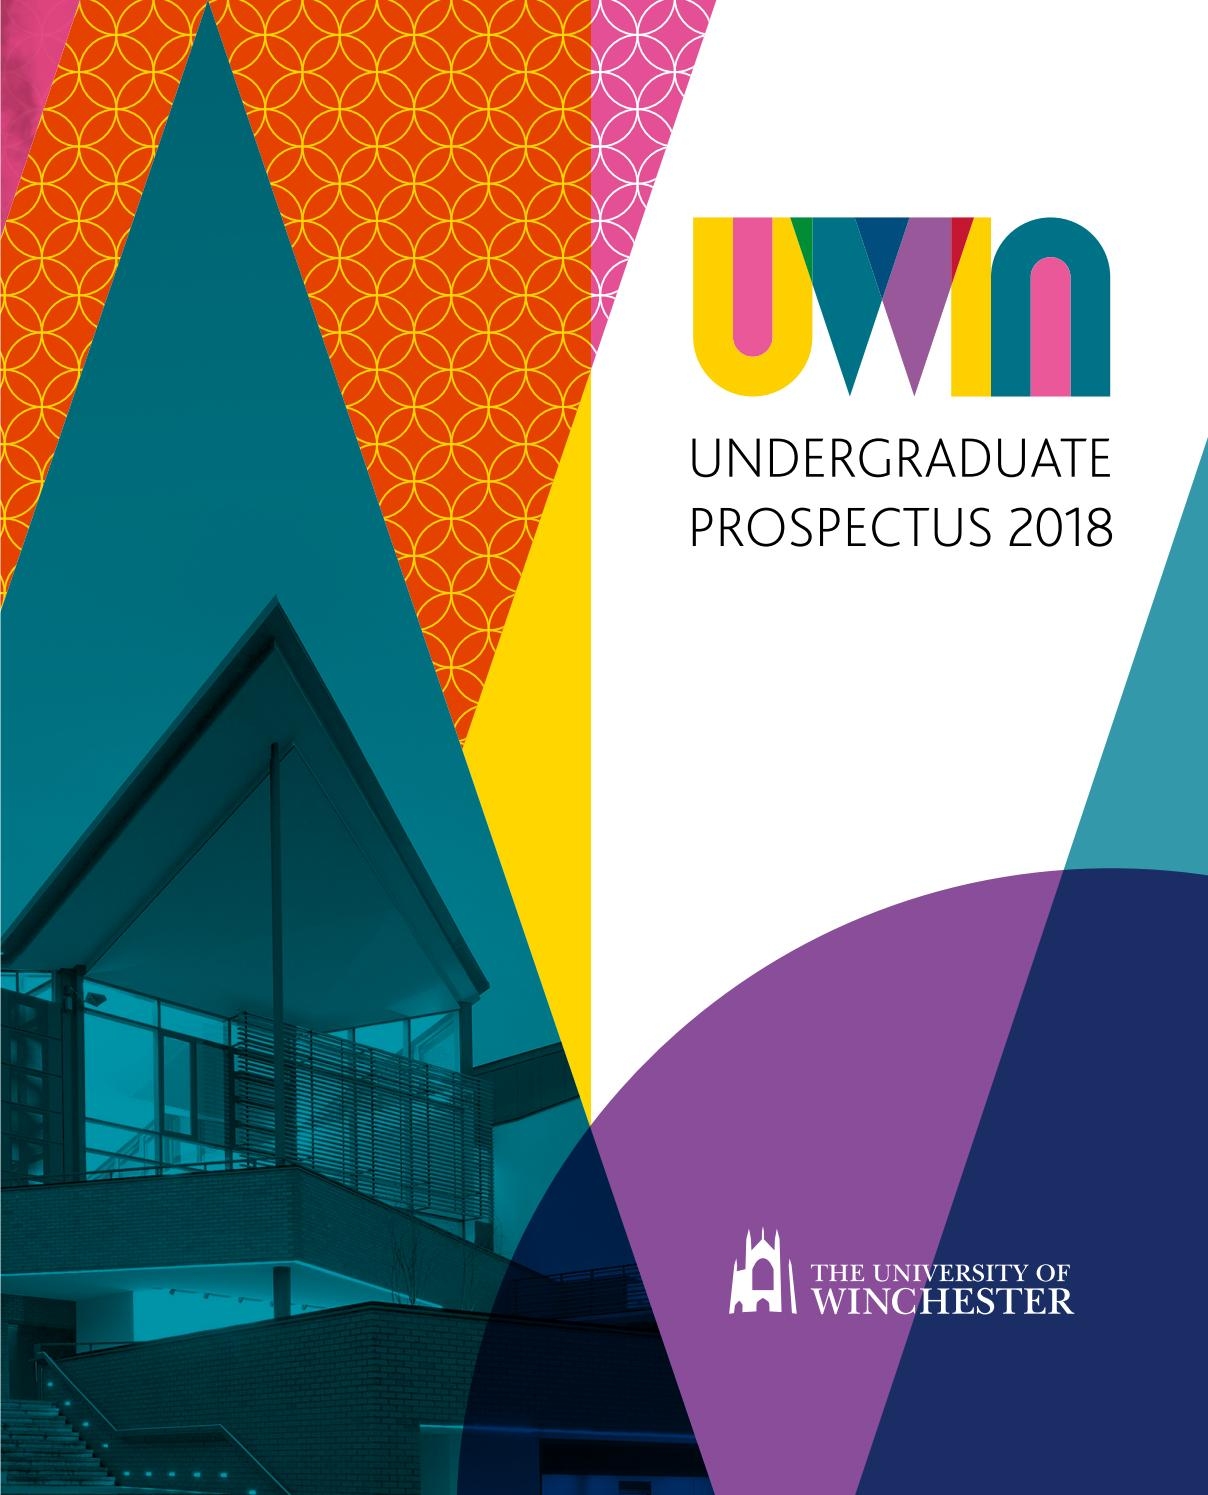 Undergraduate 2018 prospectus by the university of winchester issuu fandeluxe